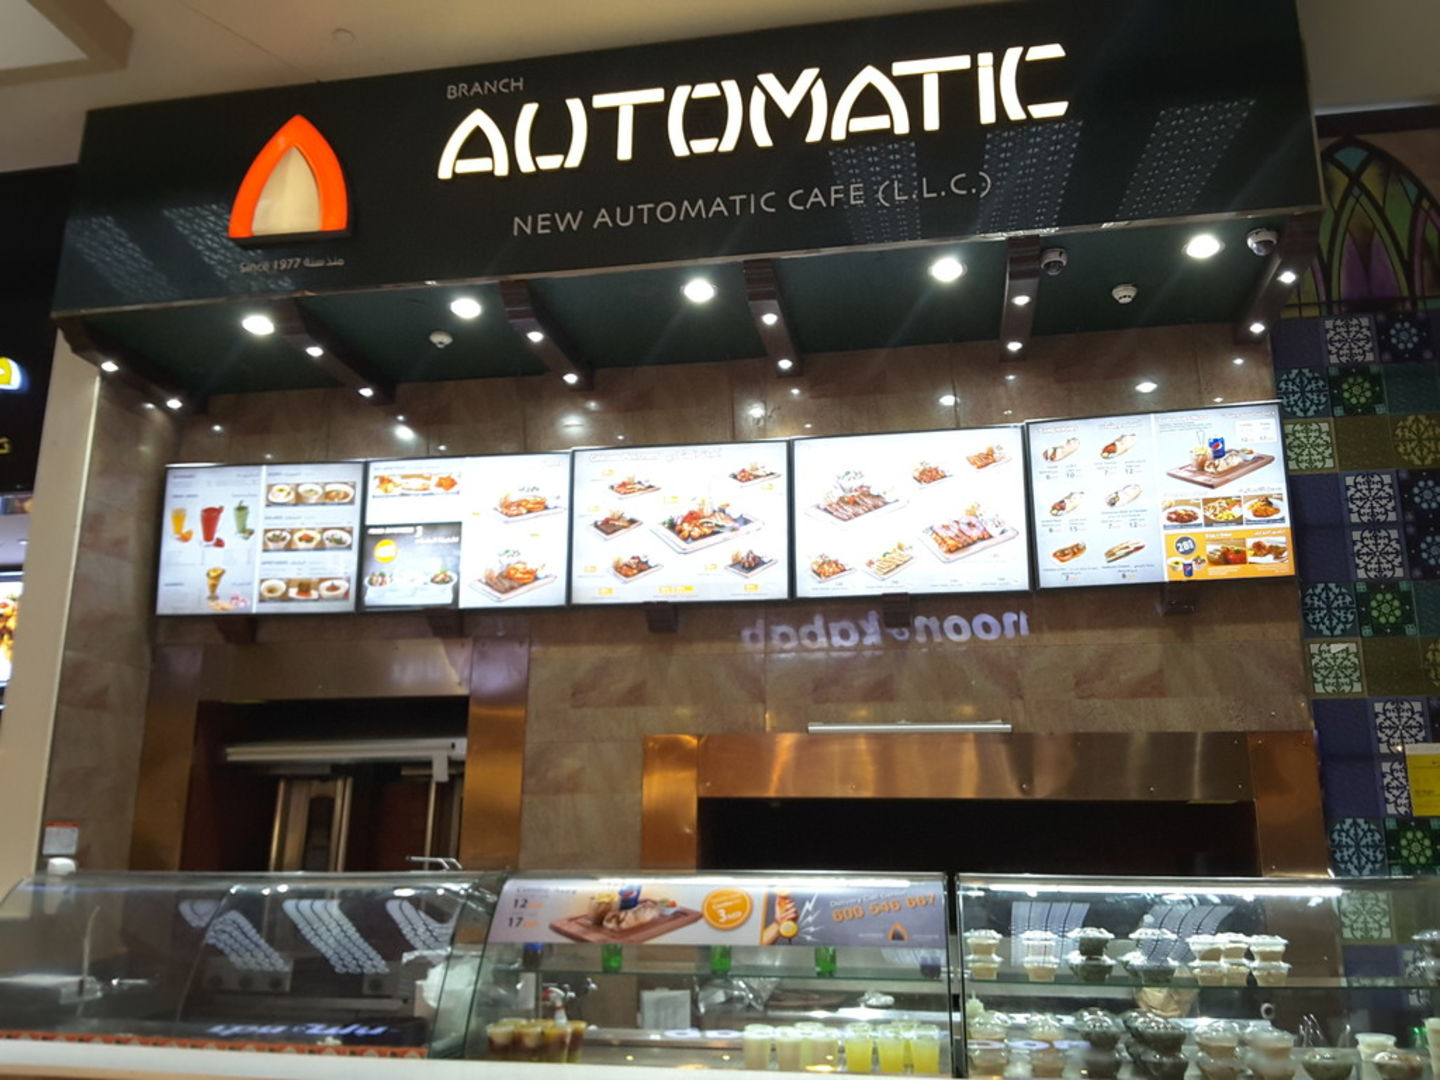 HiDubai-business-automatic-restaurant-food-beverage-restaurants-bars-ibn-batuta-jebel-ali-1-dubai-2